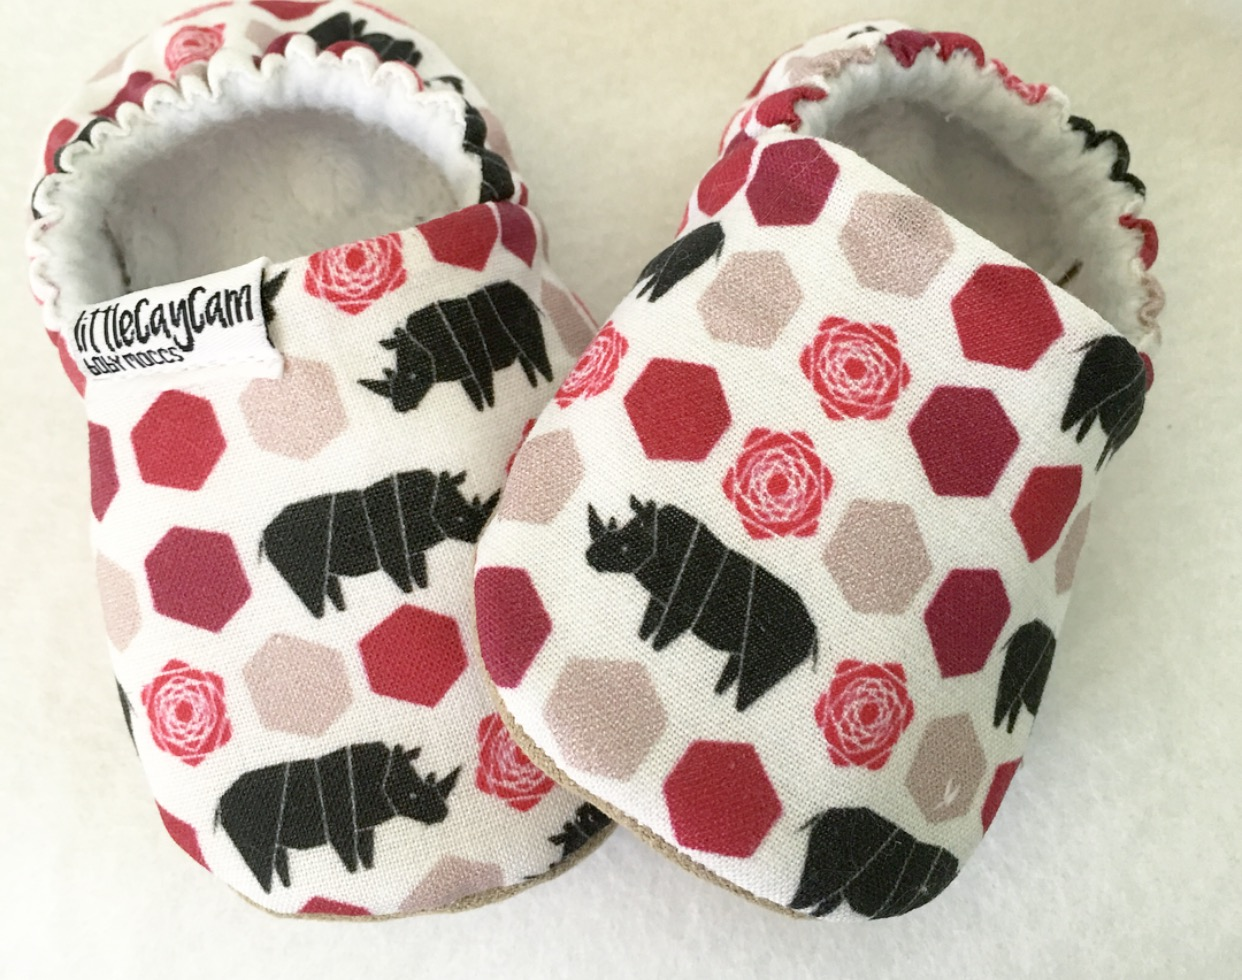 Baby shoes made from Lellobird fabric by Casey Dumadag